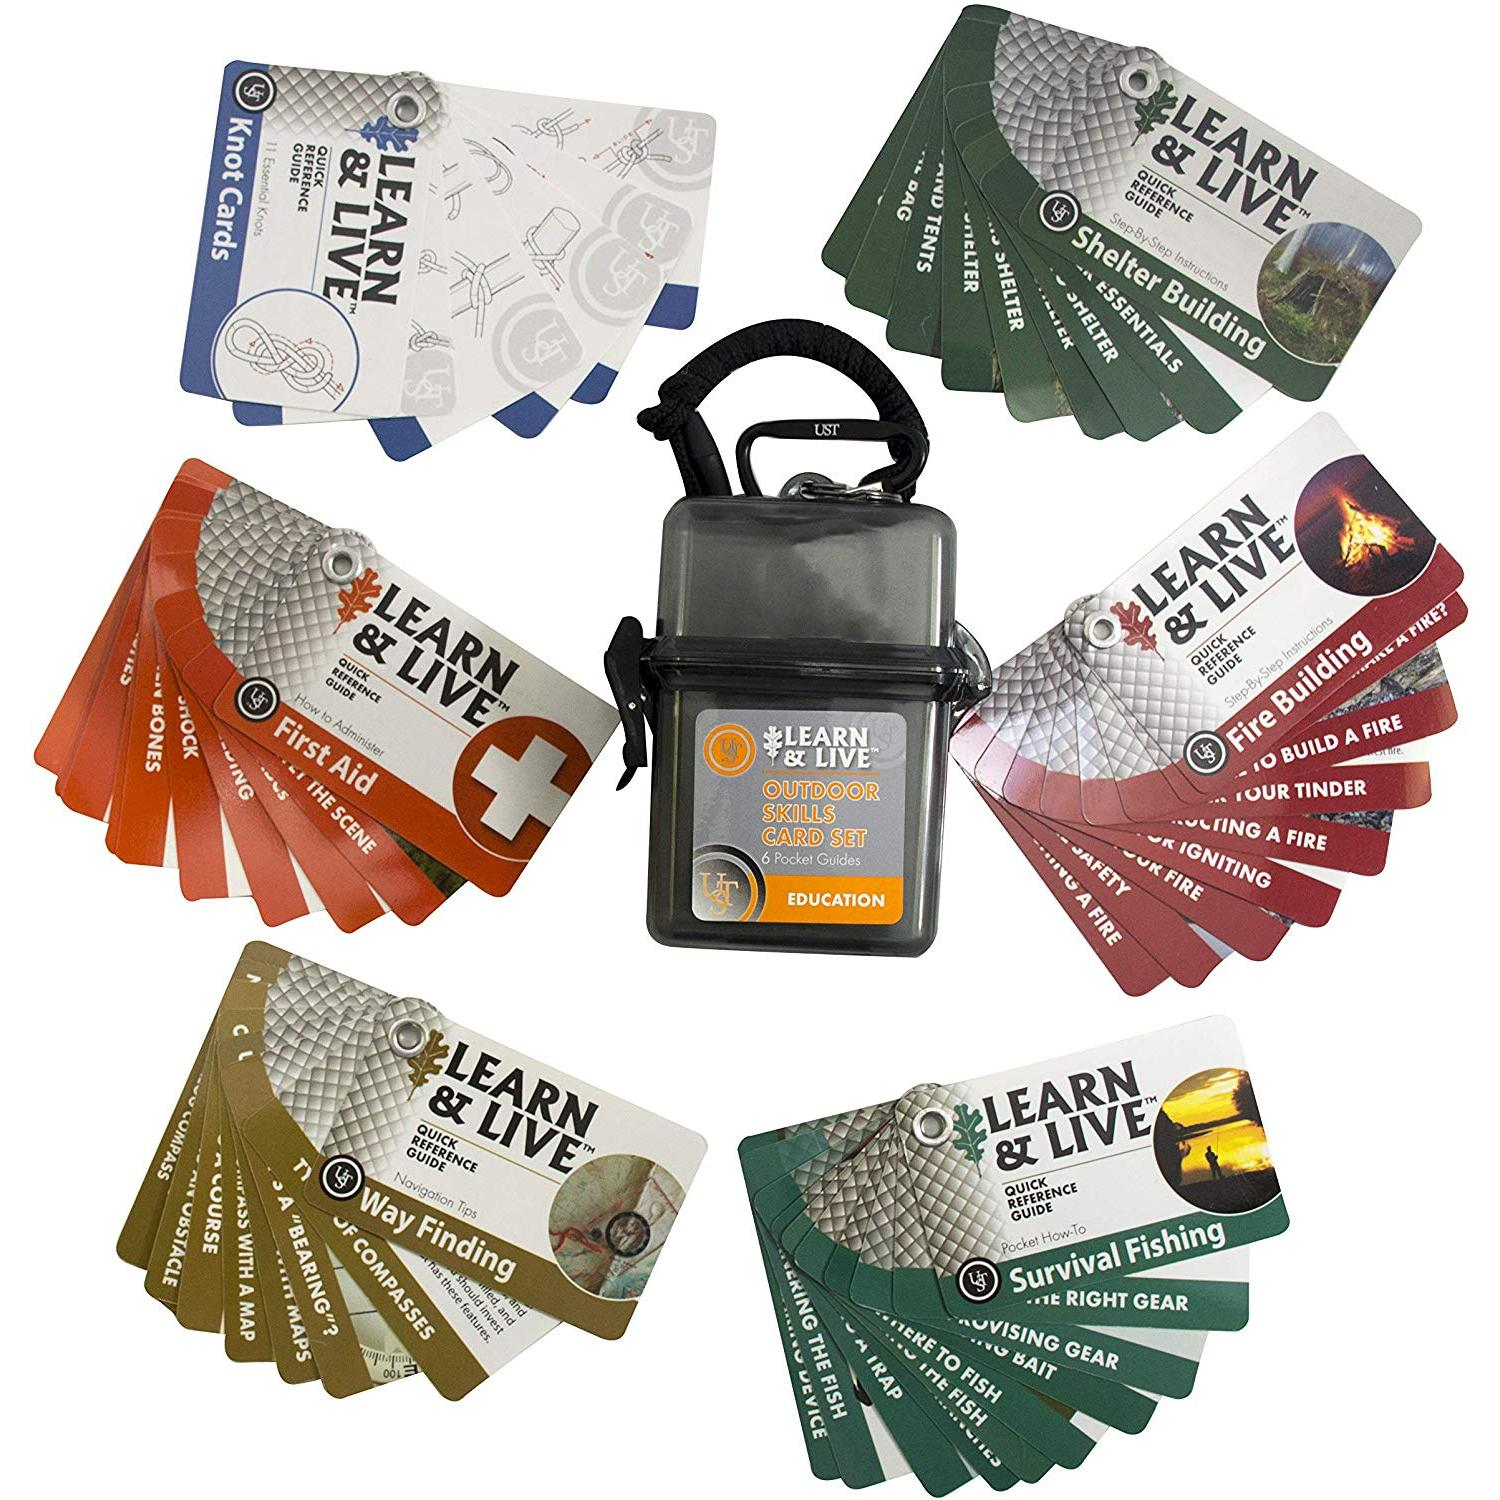 UST Learn & Live Educational Card Set with Durable, Waterproof, Compact Design and Essential Outdoor Skills for Hiking, Camping and Outdoor Survival